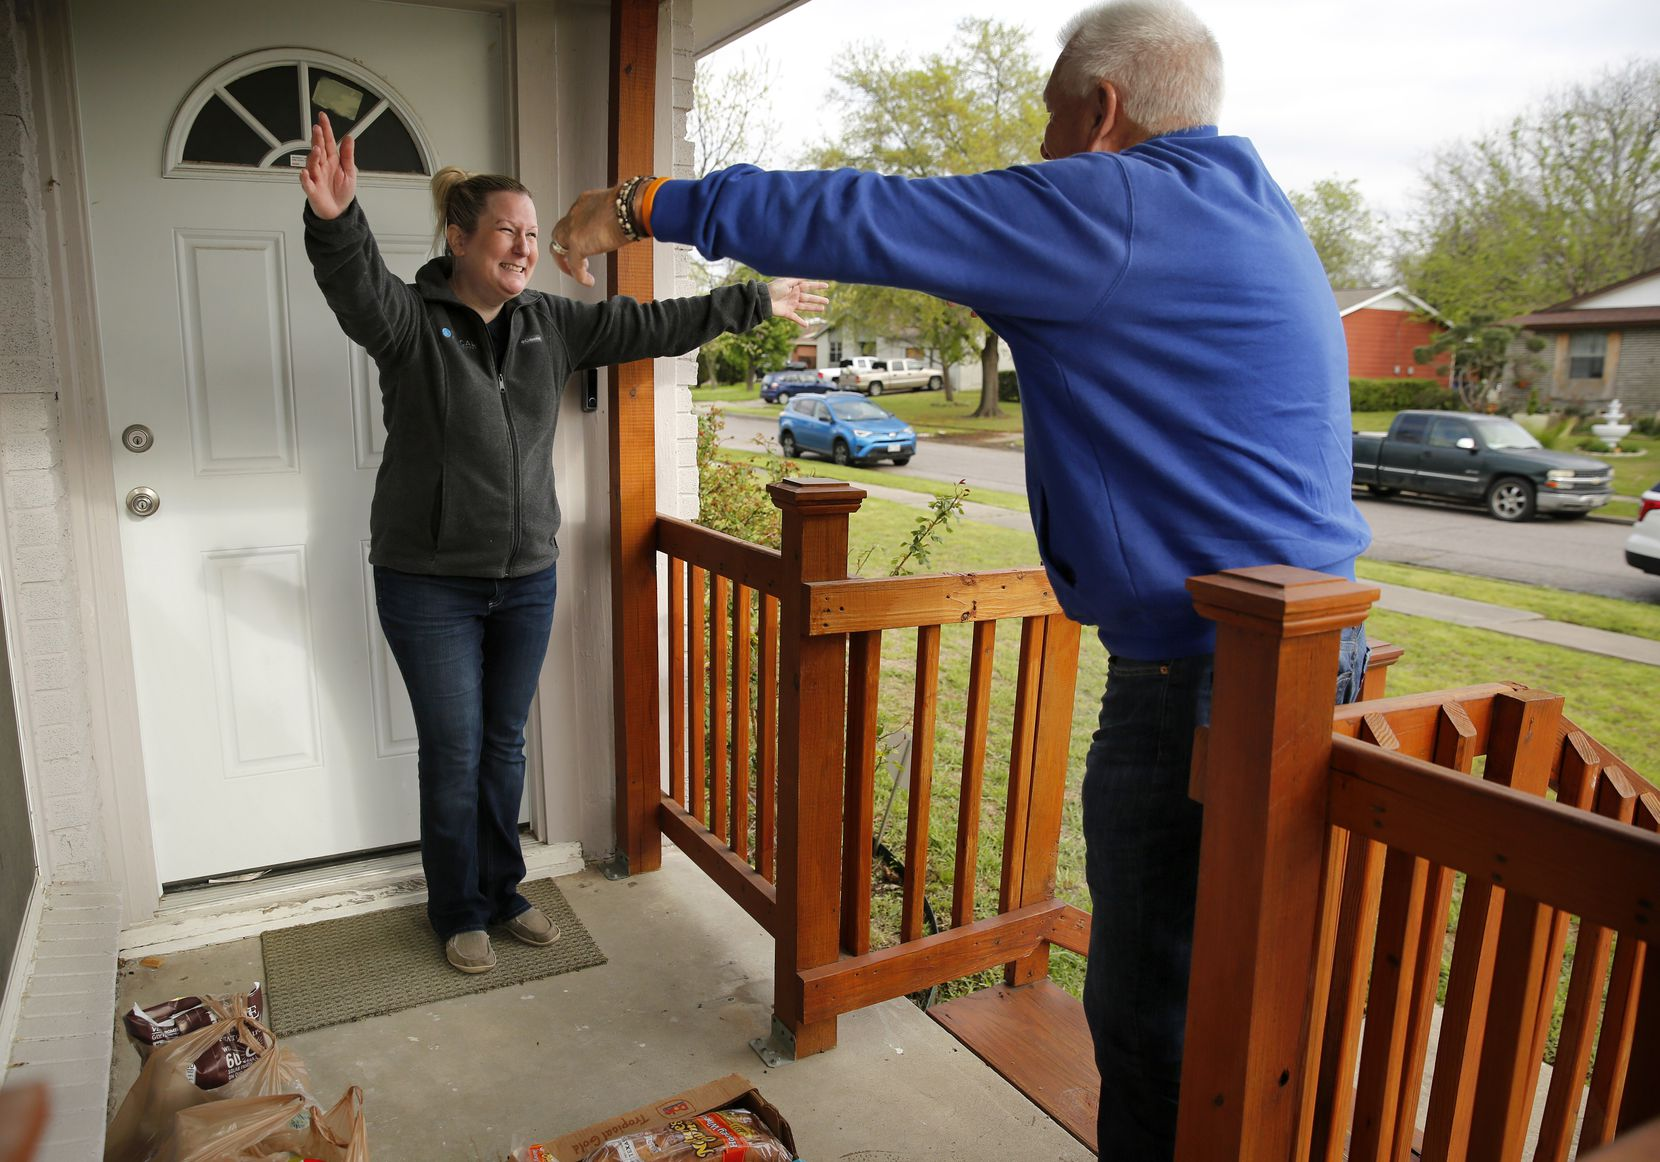 Eddy Clinton of Plano, a former coach and local sportscaster, gives Kristin Tarrence a socially distanced air hug while delivering a load of groceries to her Farmers Branch home.